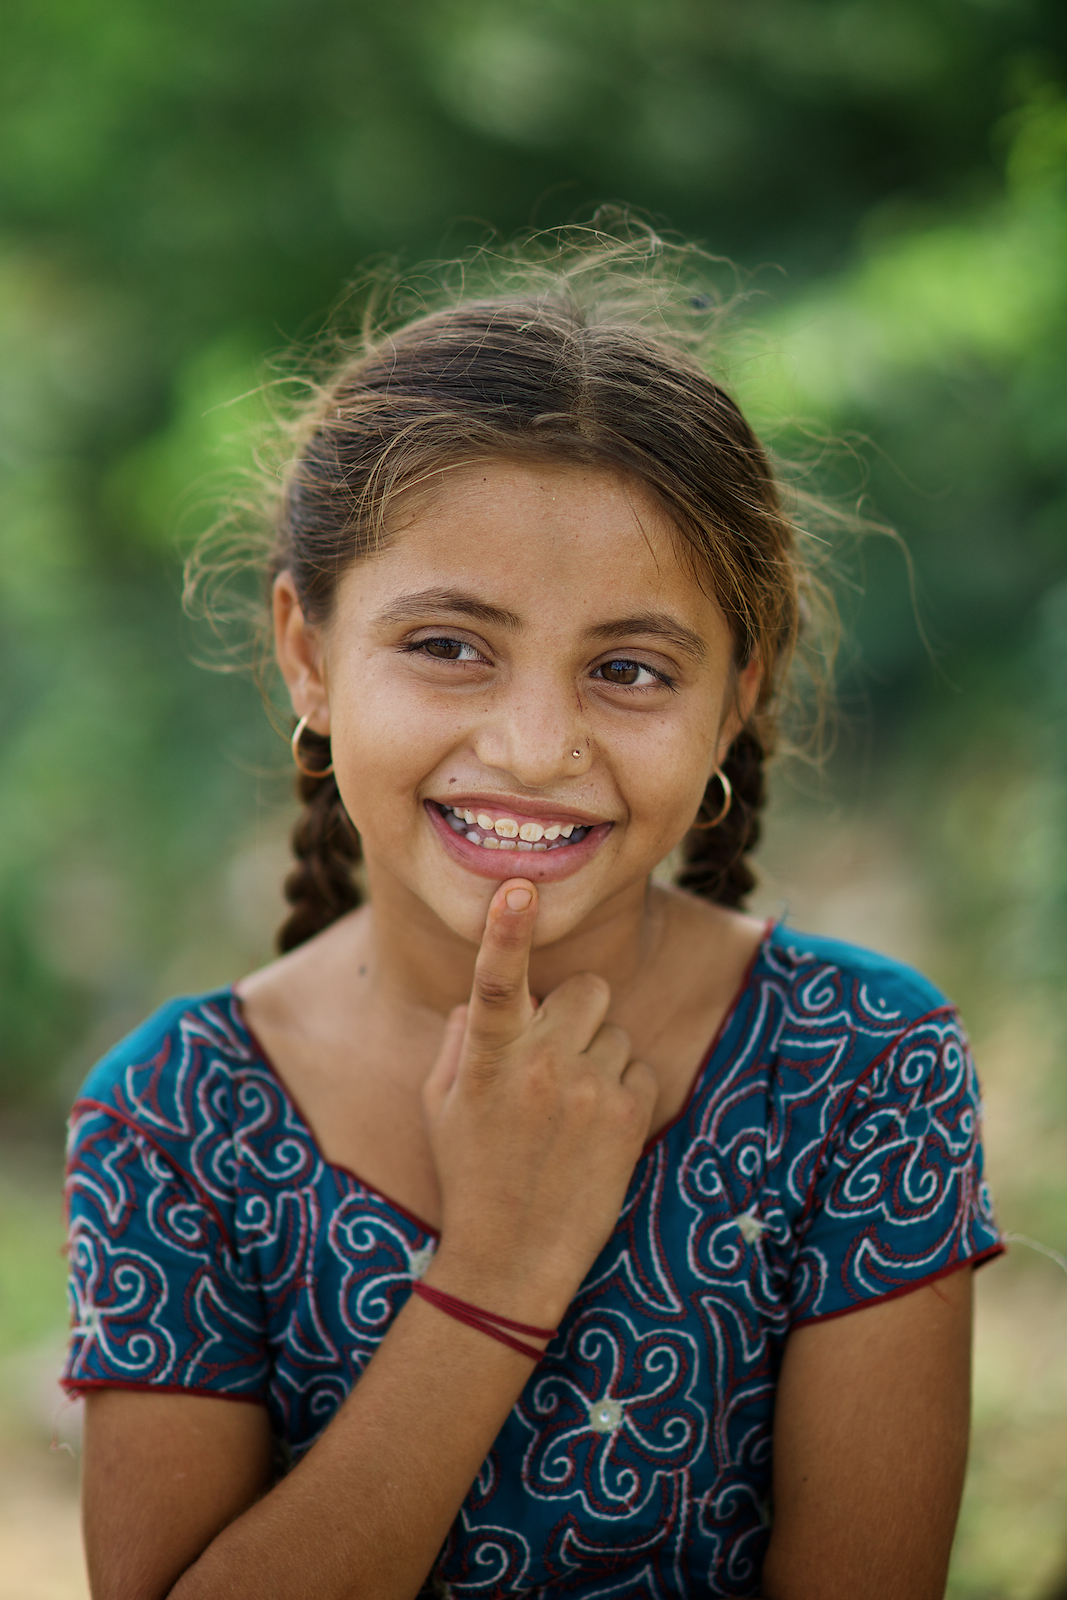 Cute Indian Little Girl In A Village Next To Buhj, Gujarat